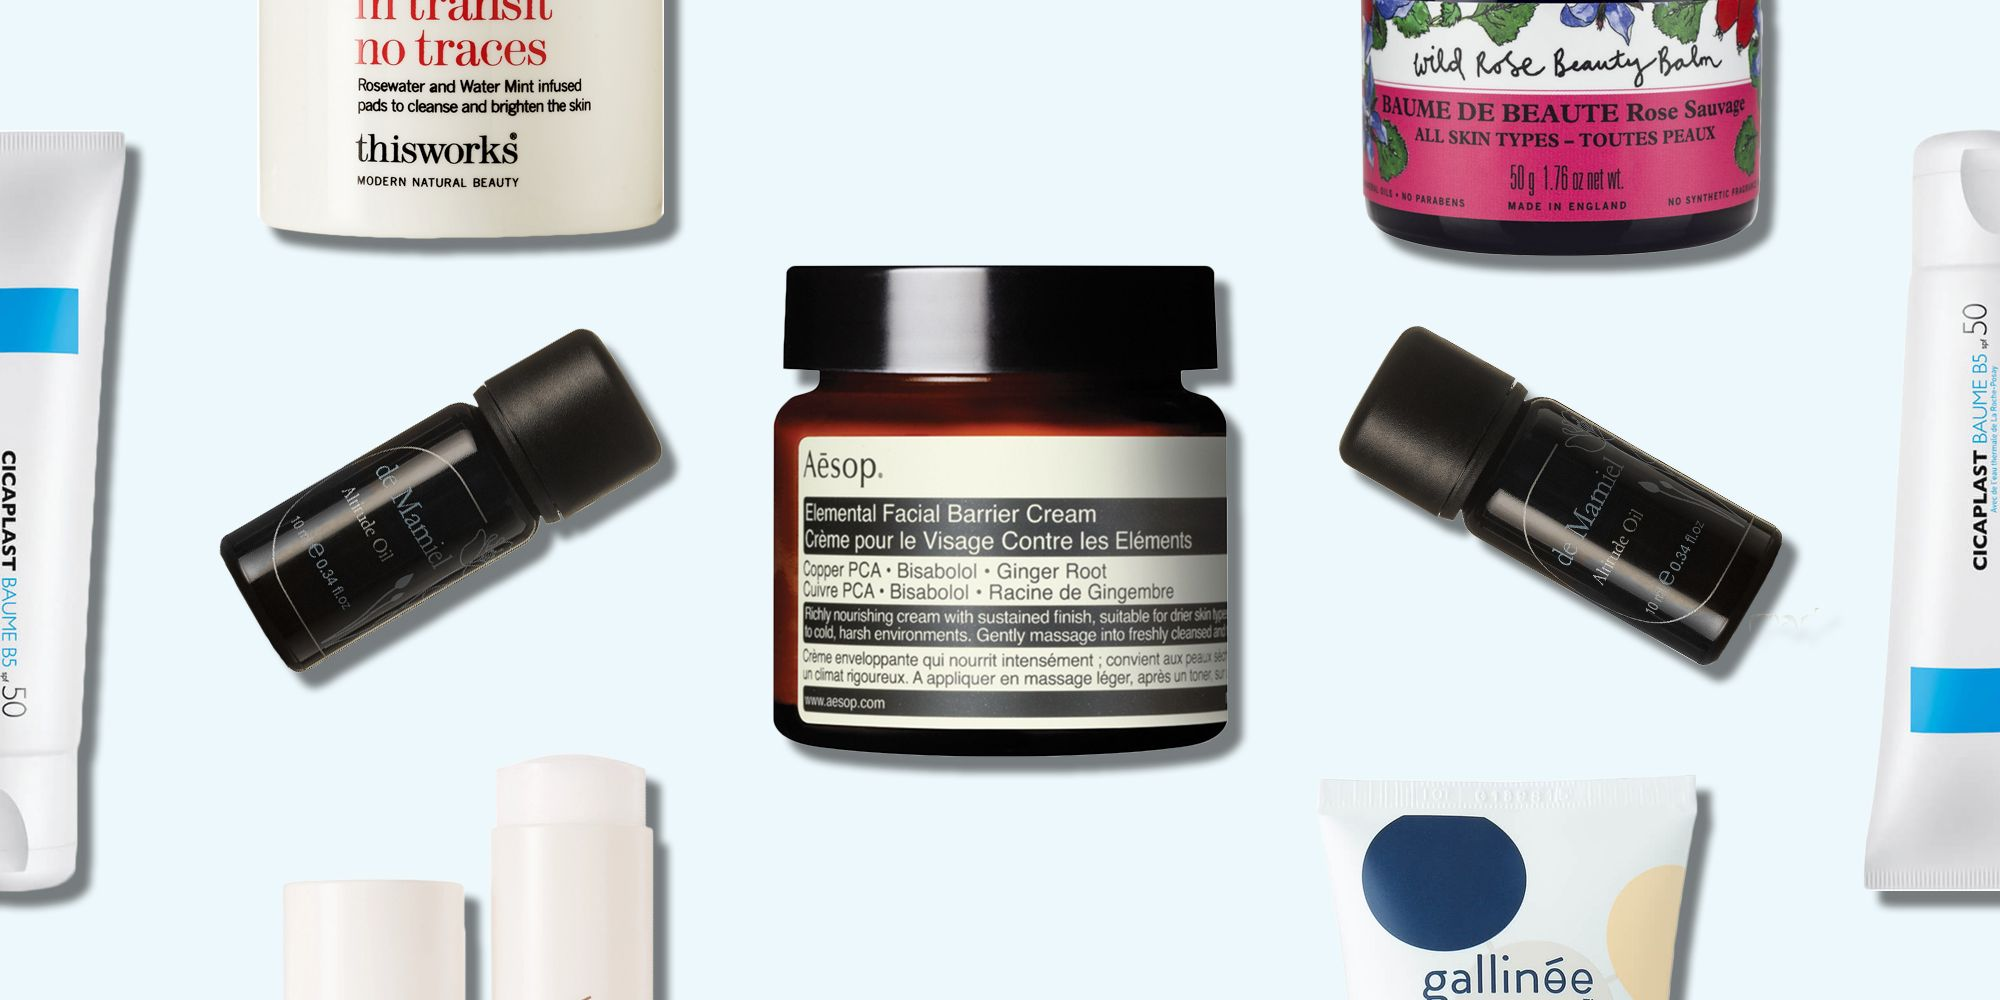 15 Skincare Products For Plane Travel - Best Beauty Products